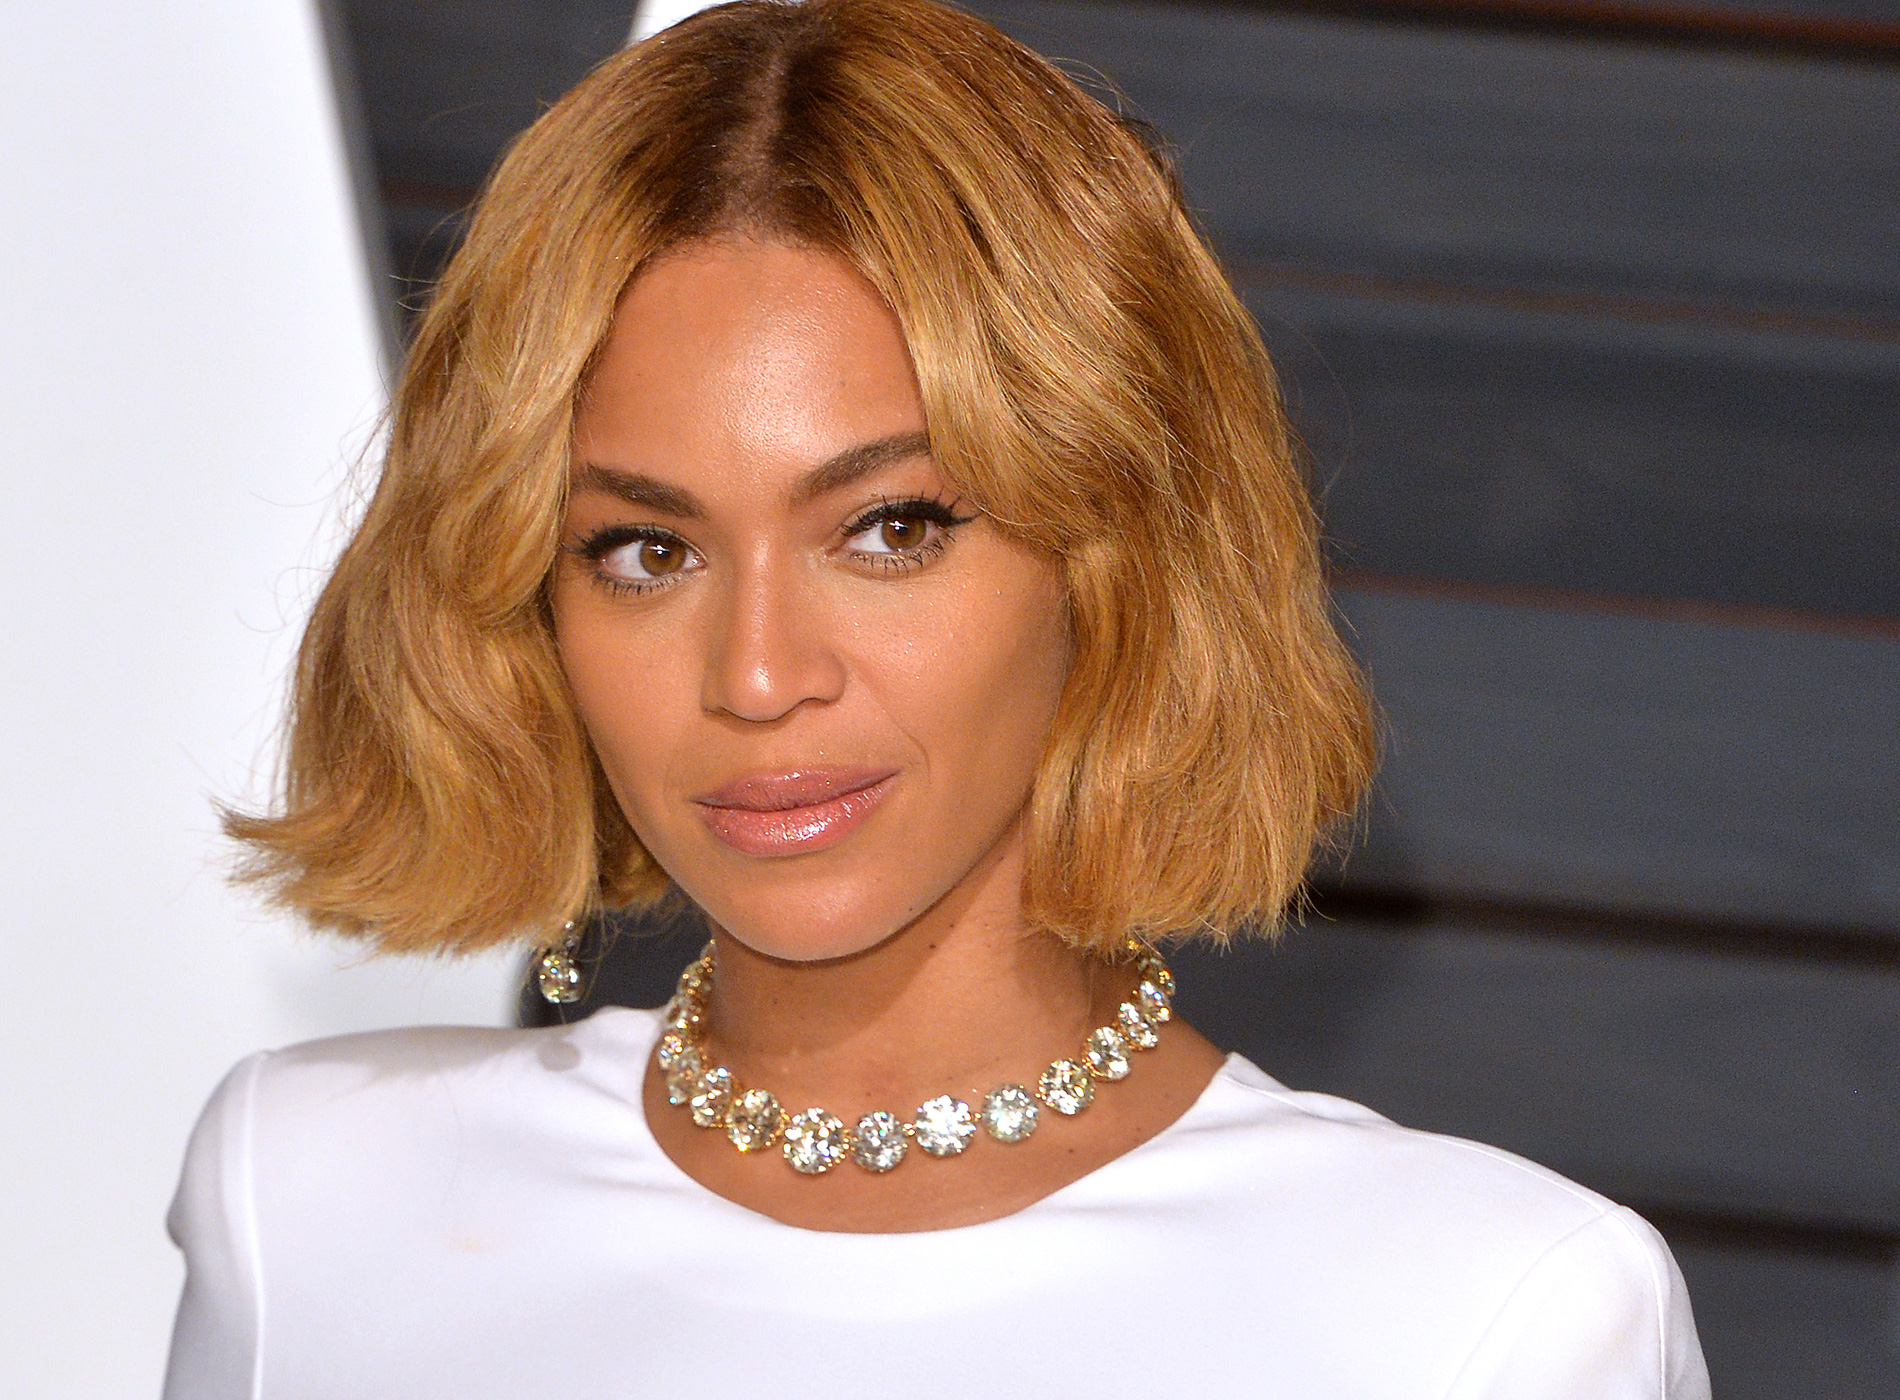 Beyonce arrives at the 2015 Vanity Fair Oscar Party Hosted By Graydon Carter at Wallis Annenberg Center for the Performing Arts on Feb.22, 2015 in Beverly Hills, Calif.